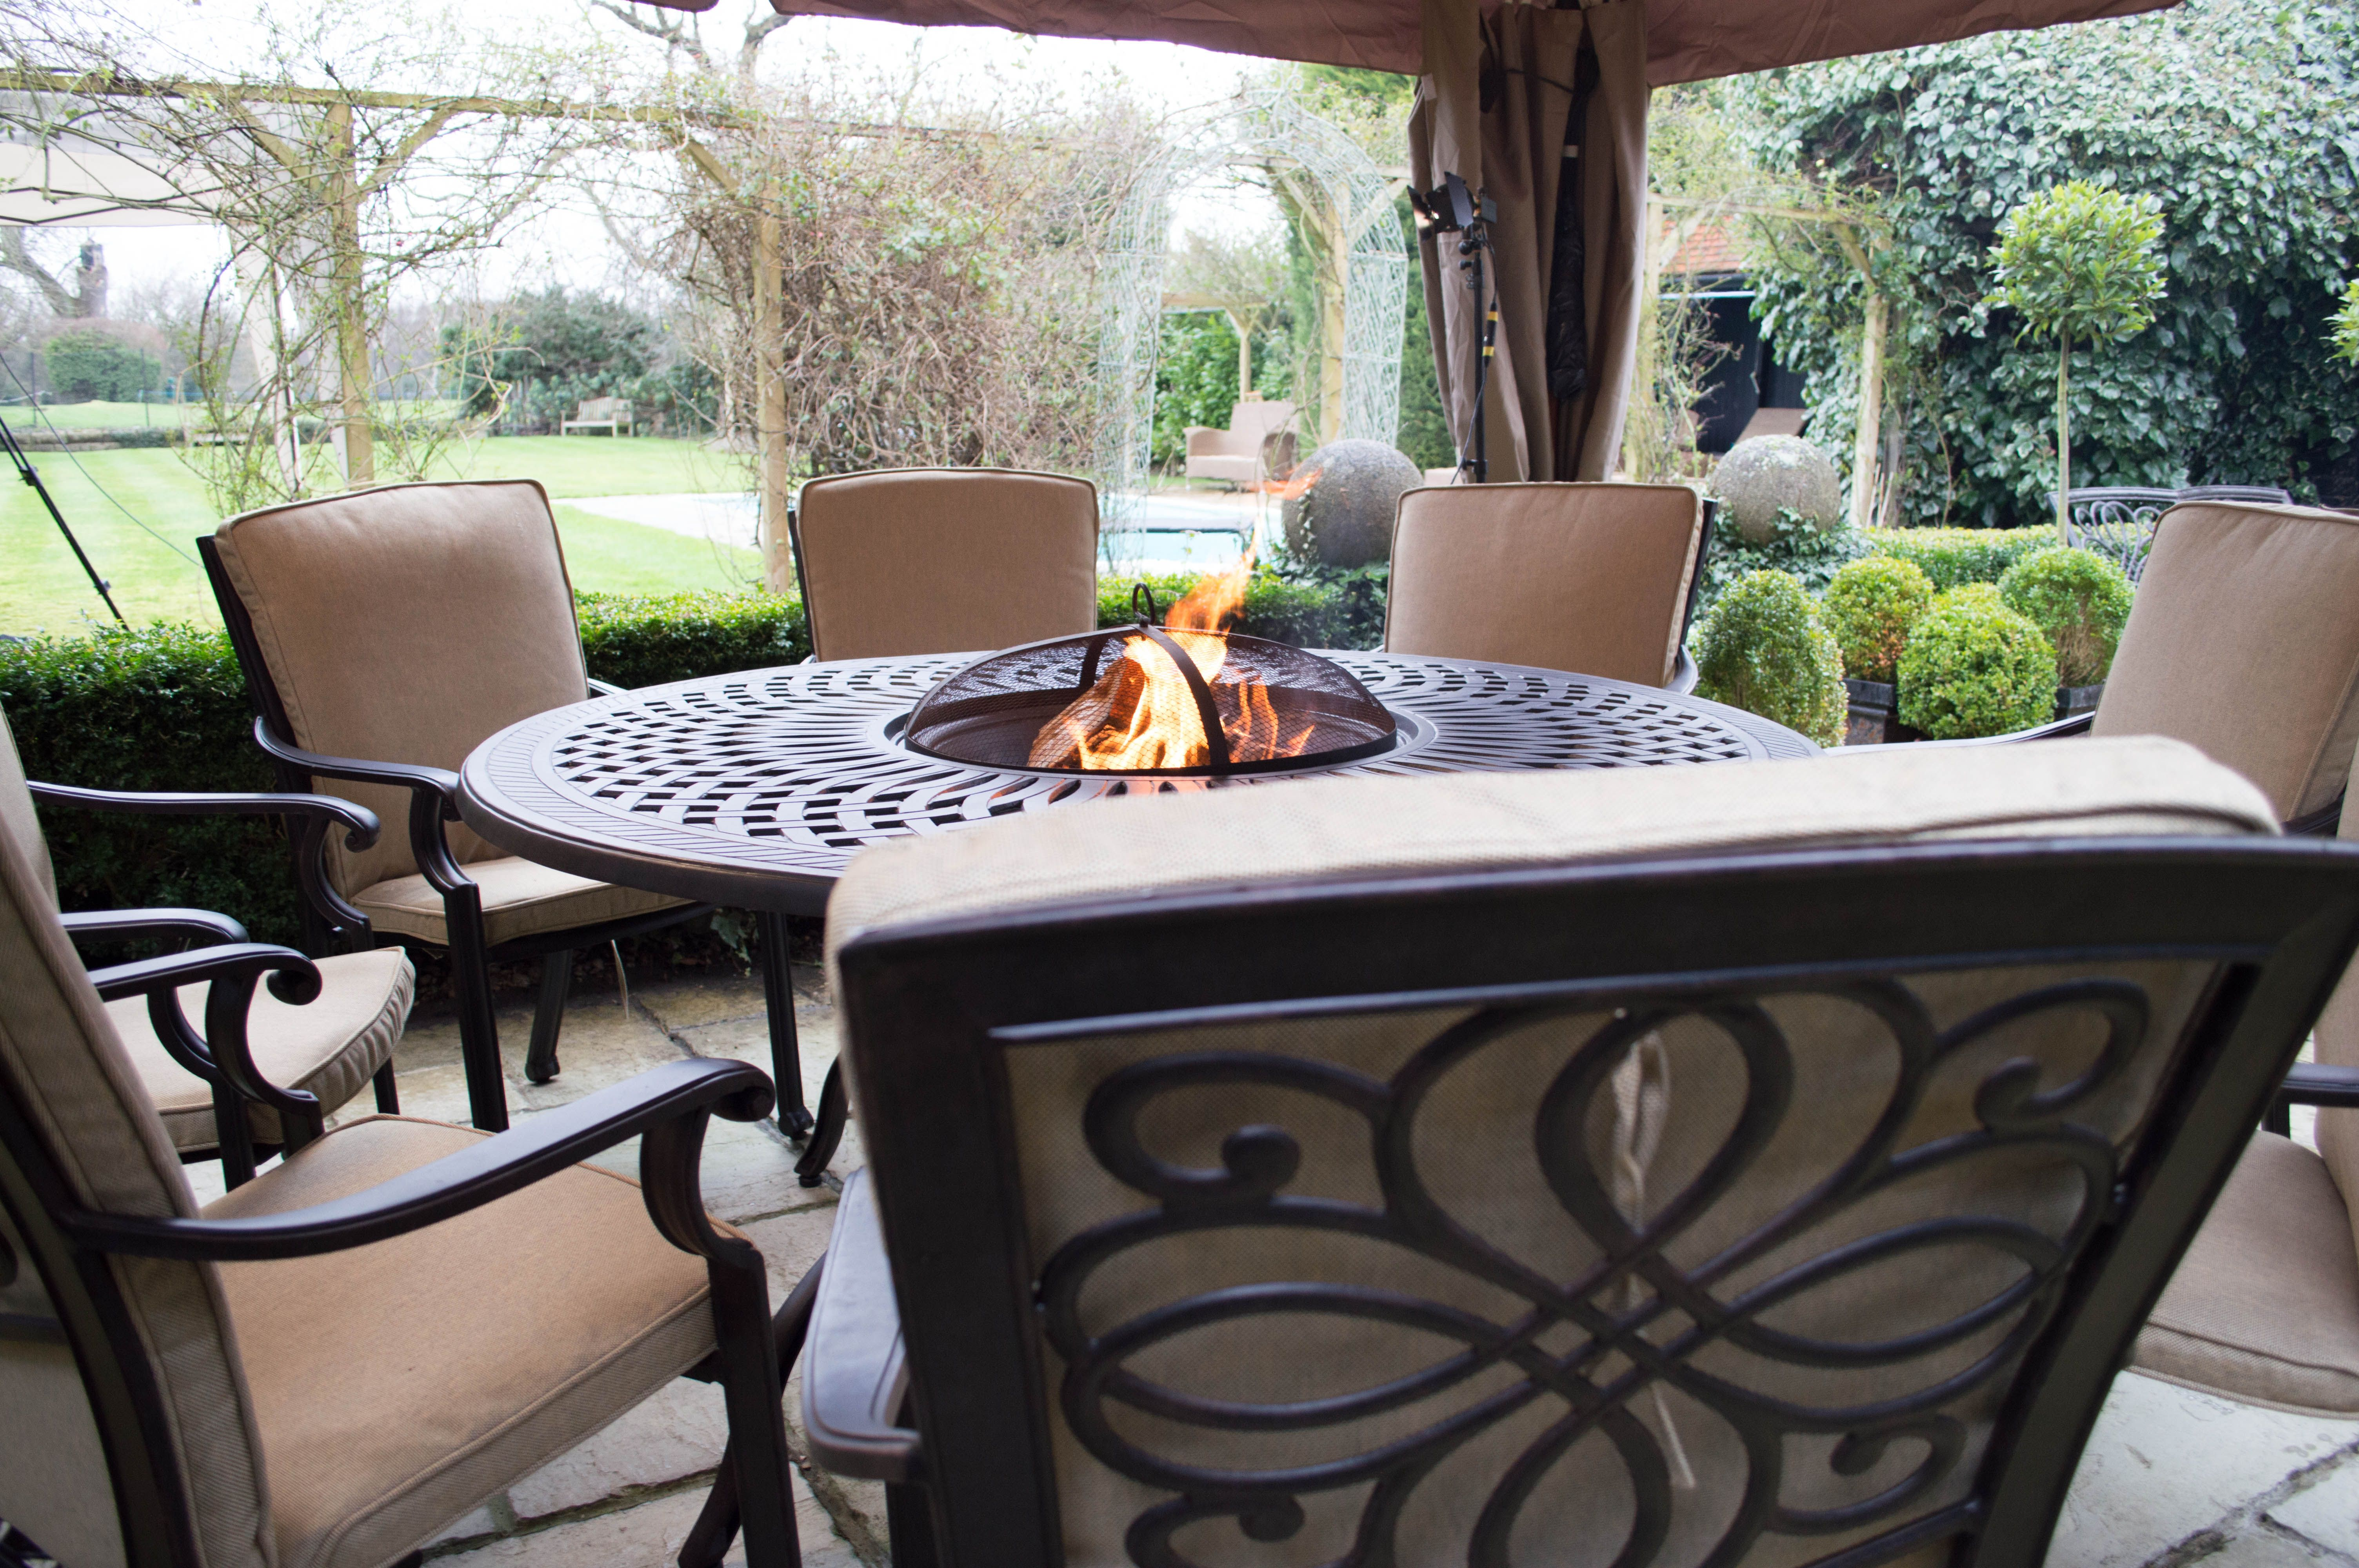 Garden Furniture With Fire Pit Uk great pic of a gregg wallace dining set under a gazebo http